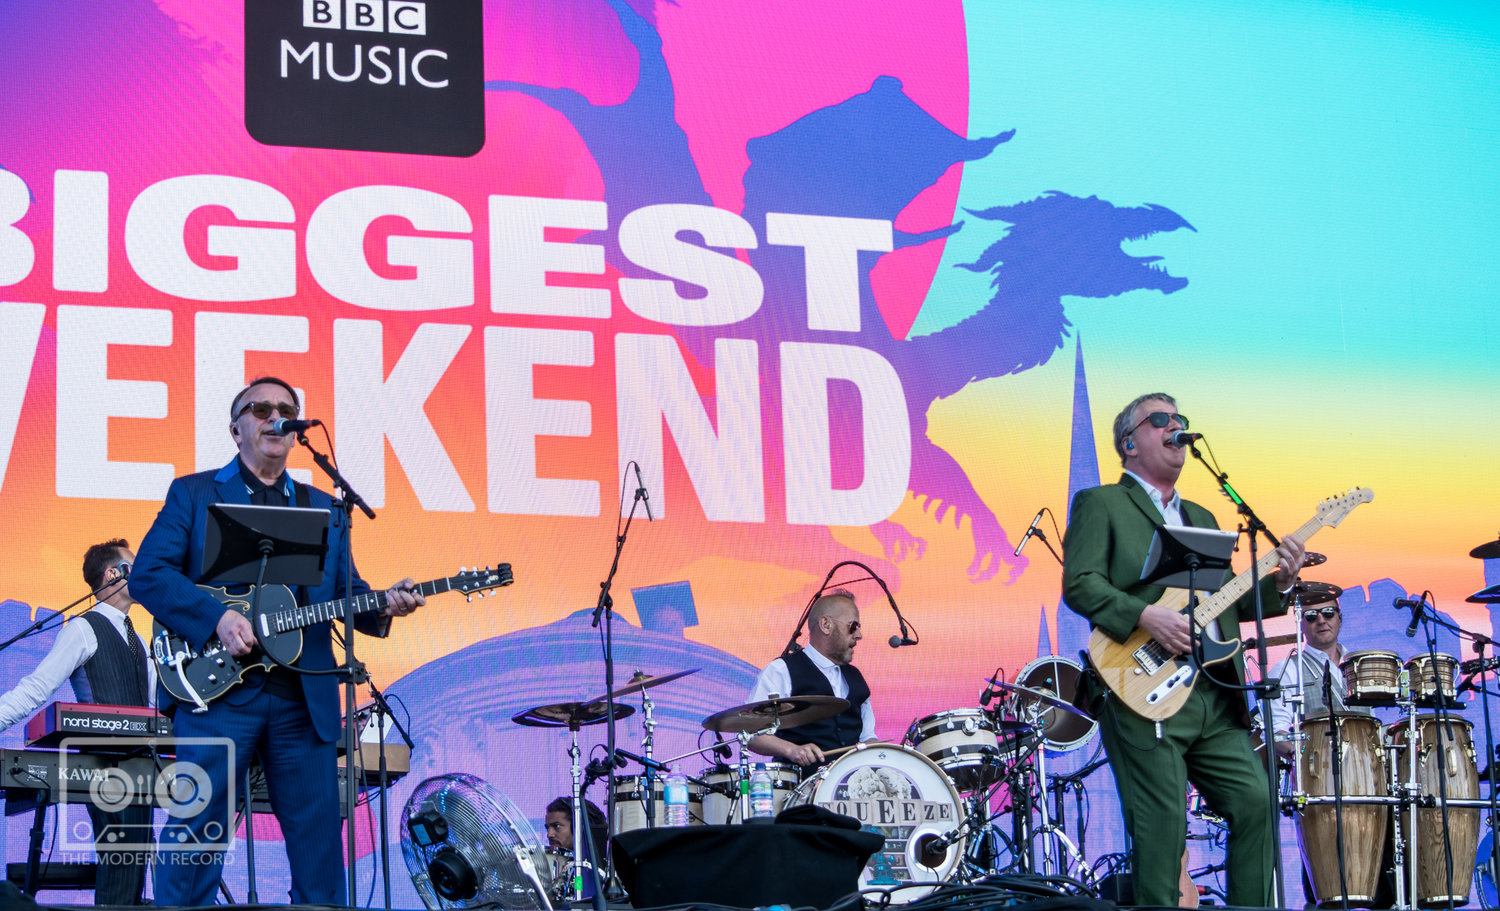 SQUEEZE OPENING UP DAY TWO OF BBC BIGGEST WEEKEND IN PERTH - 26.05.2018  PICTURE BY: STEPHEN WILSON PHOTOGRAPHY